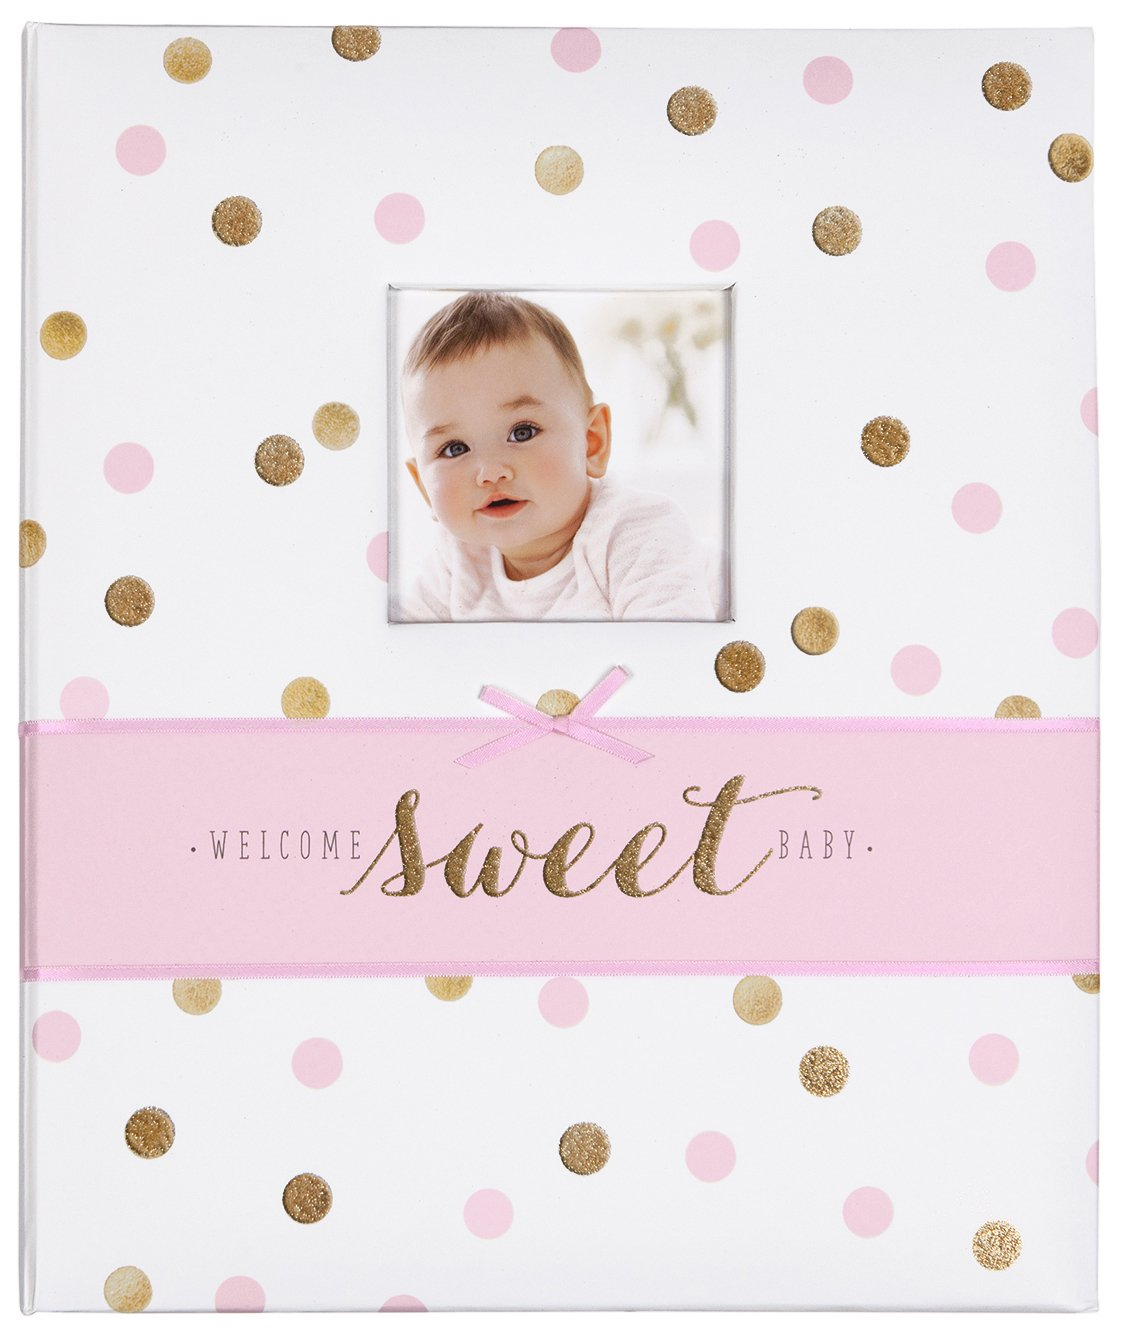 Carter's Pink and Gold Polka Dot My First Years Bound Memory Book for Baby Girls, 9'' W x 11.125'' H, 60 Pages